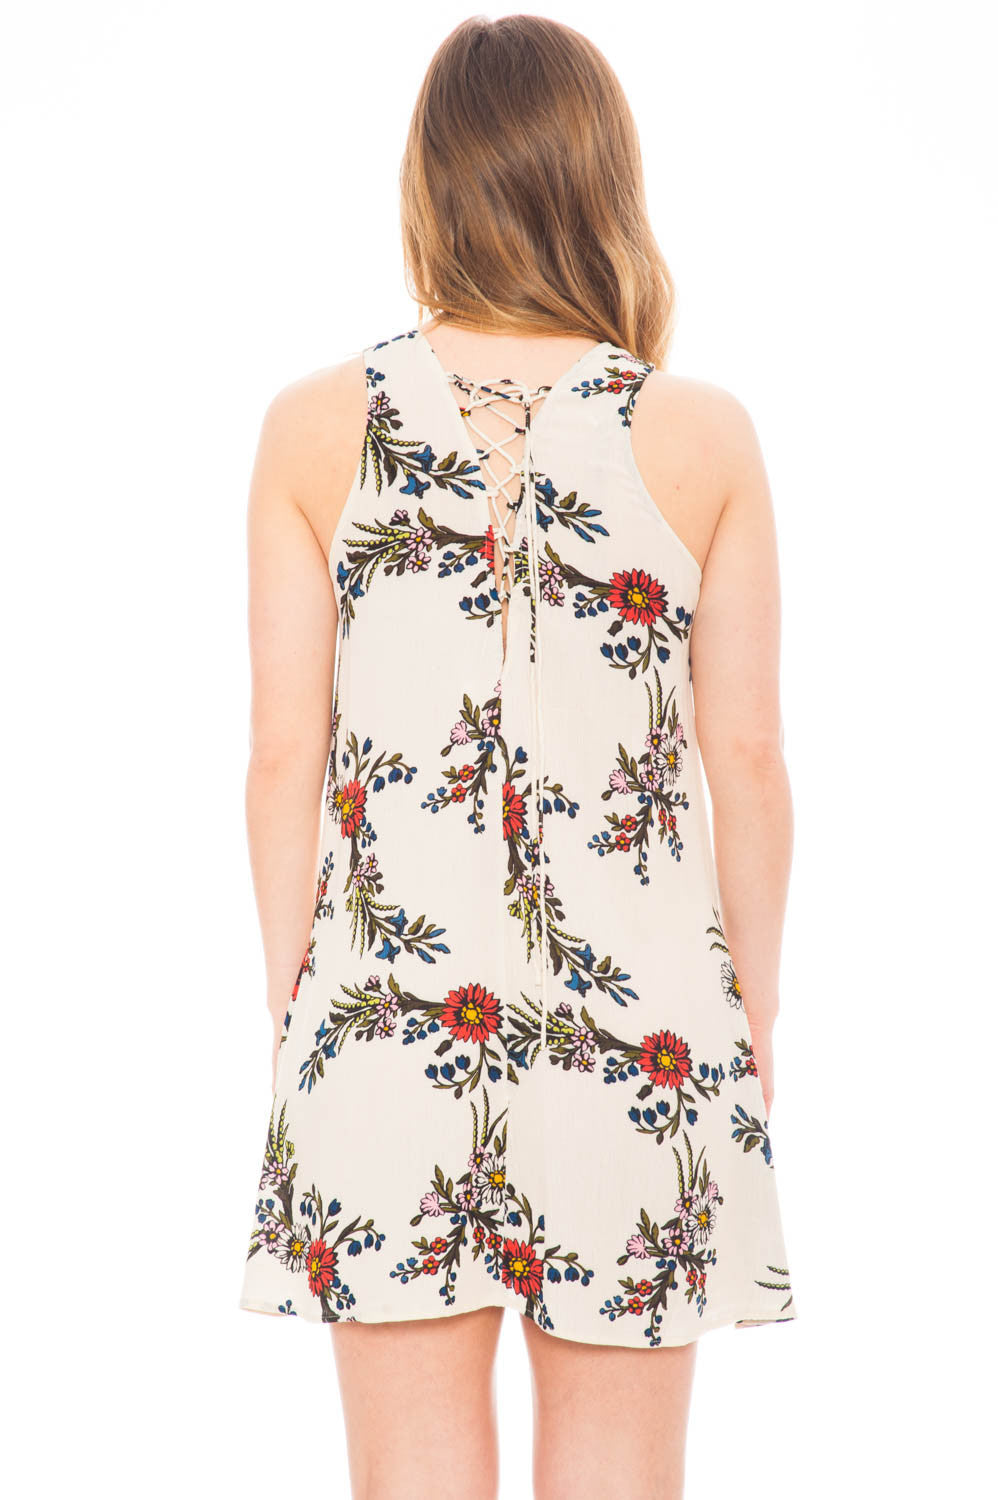 Dress - High Neck Floral Dress with Lace Up Back